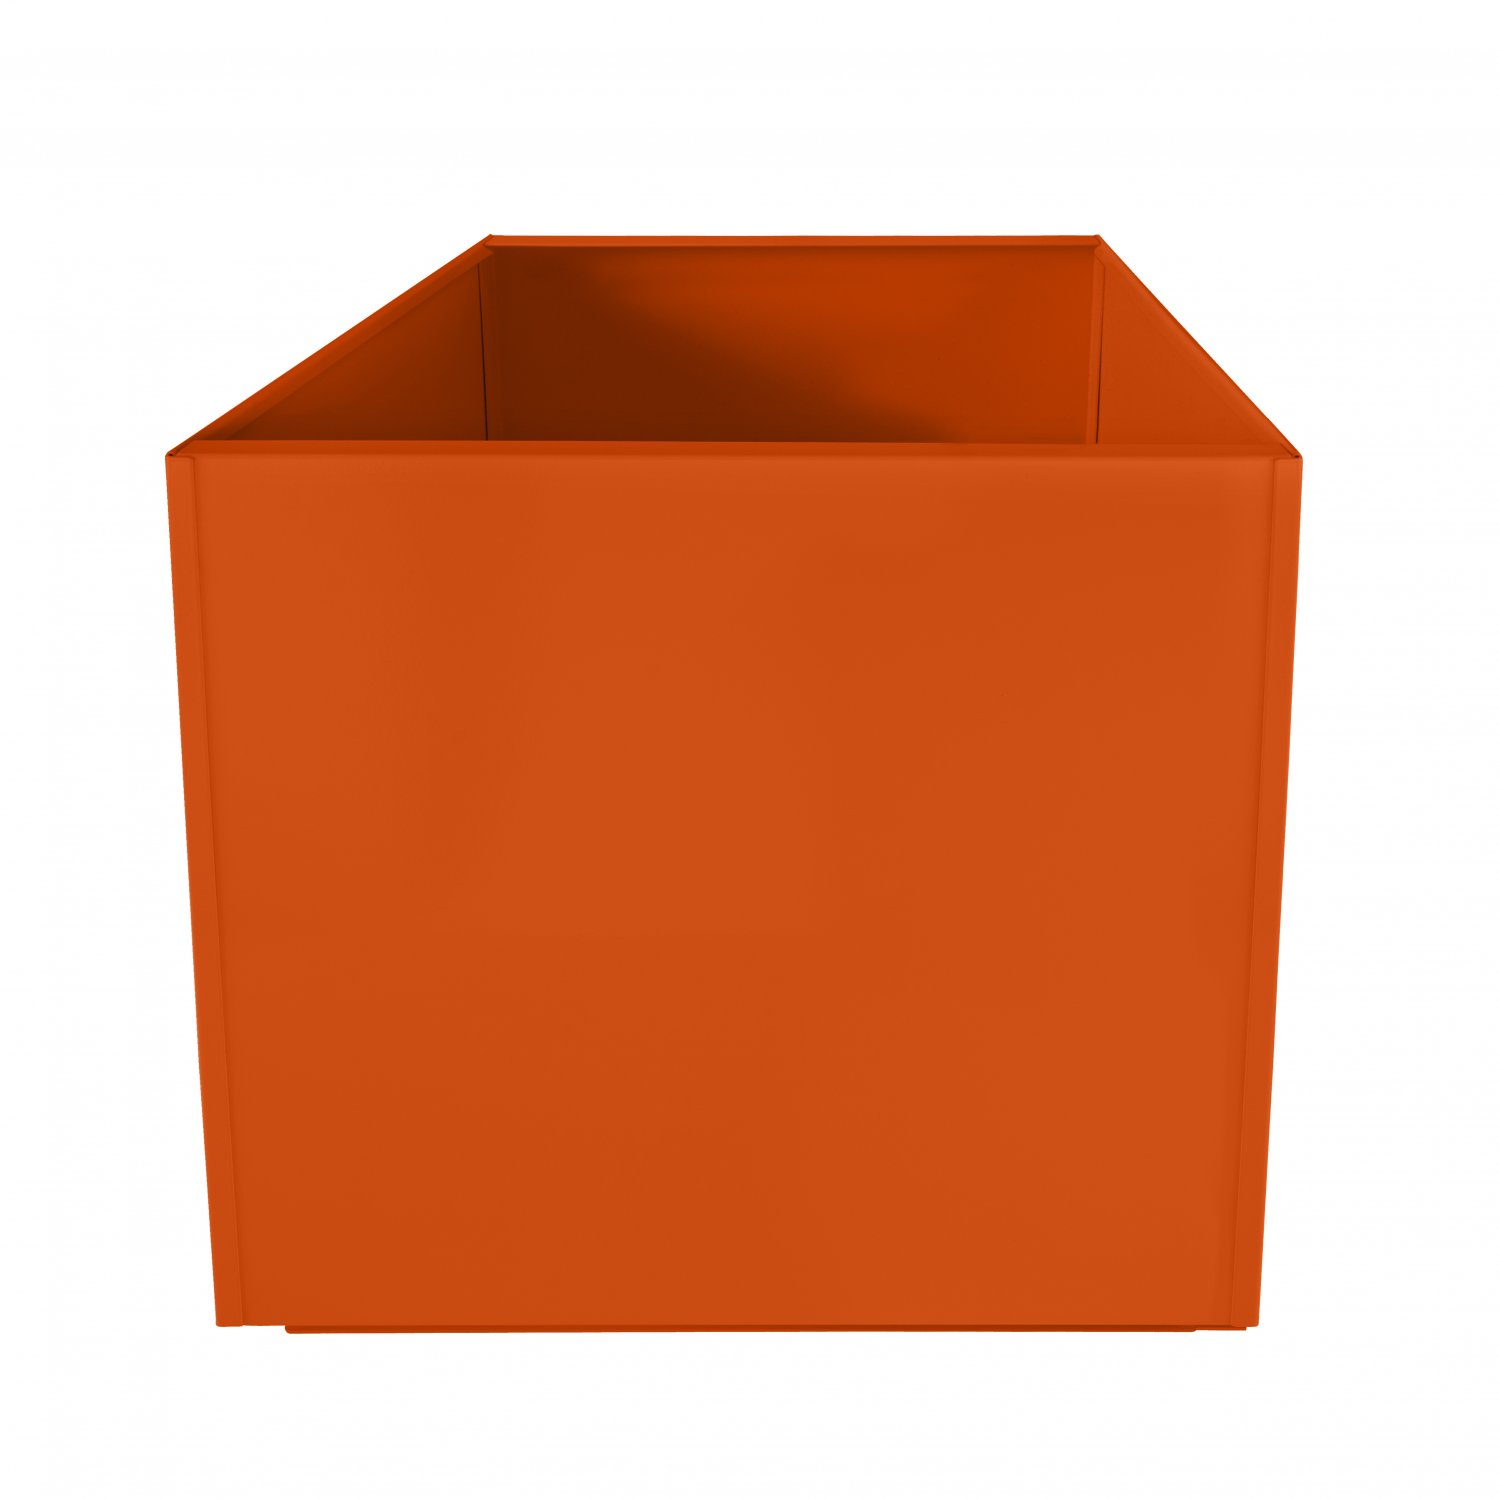 Orange Square 16 Inch Metal Planter Box Extra Large Aluminum